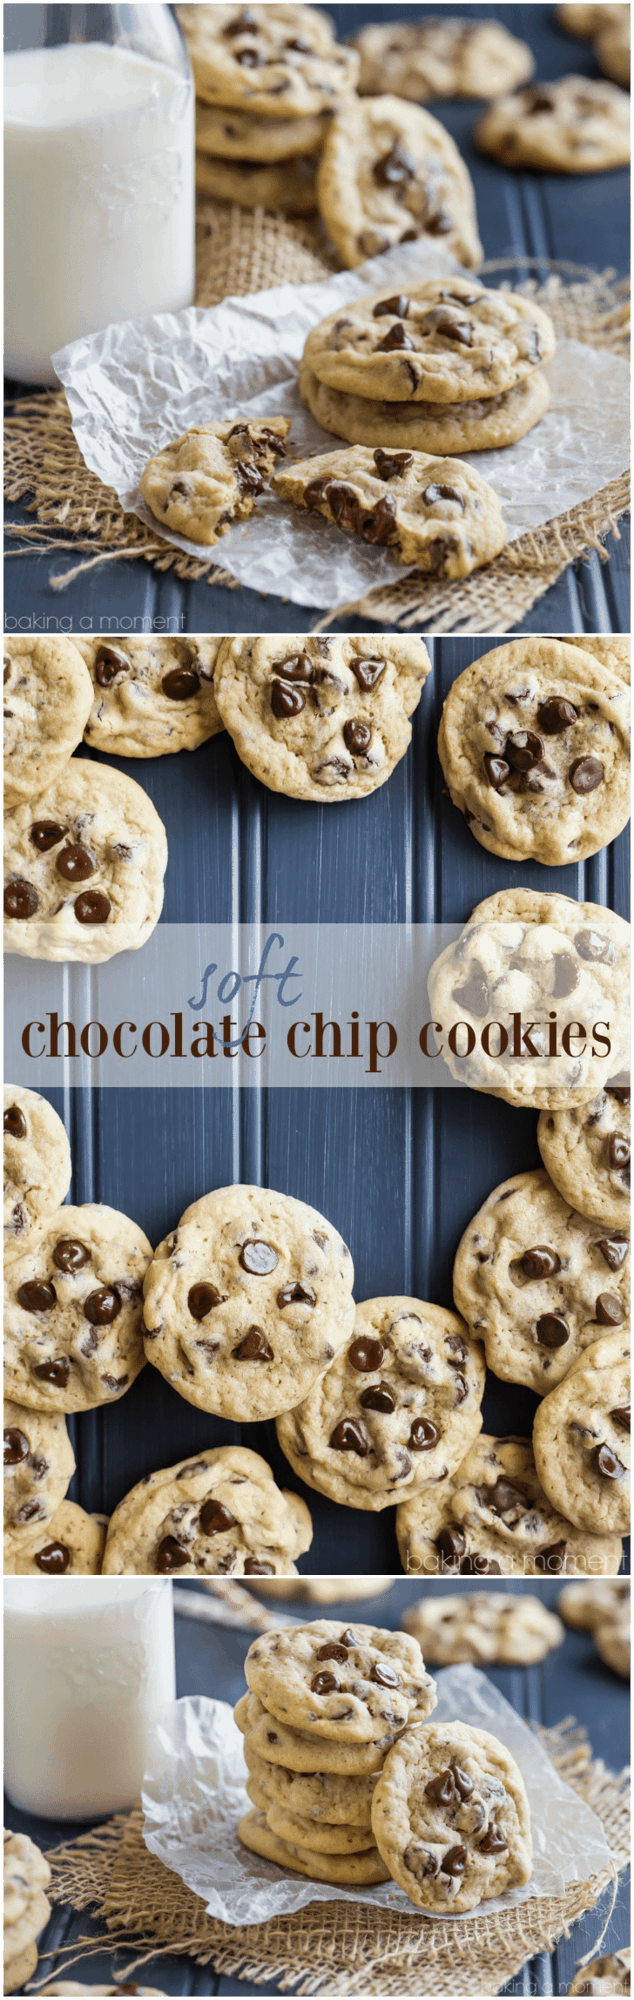 Soft Chocolate Chip Cookies - Baking A Moment